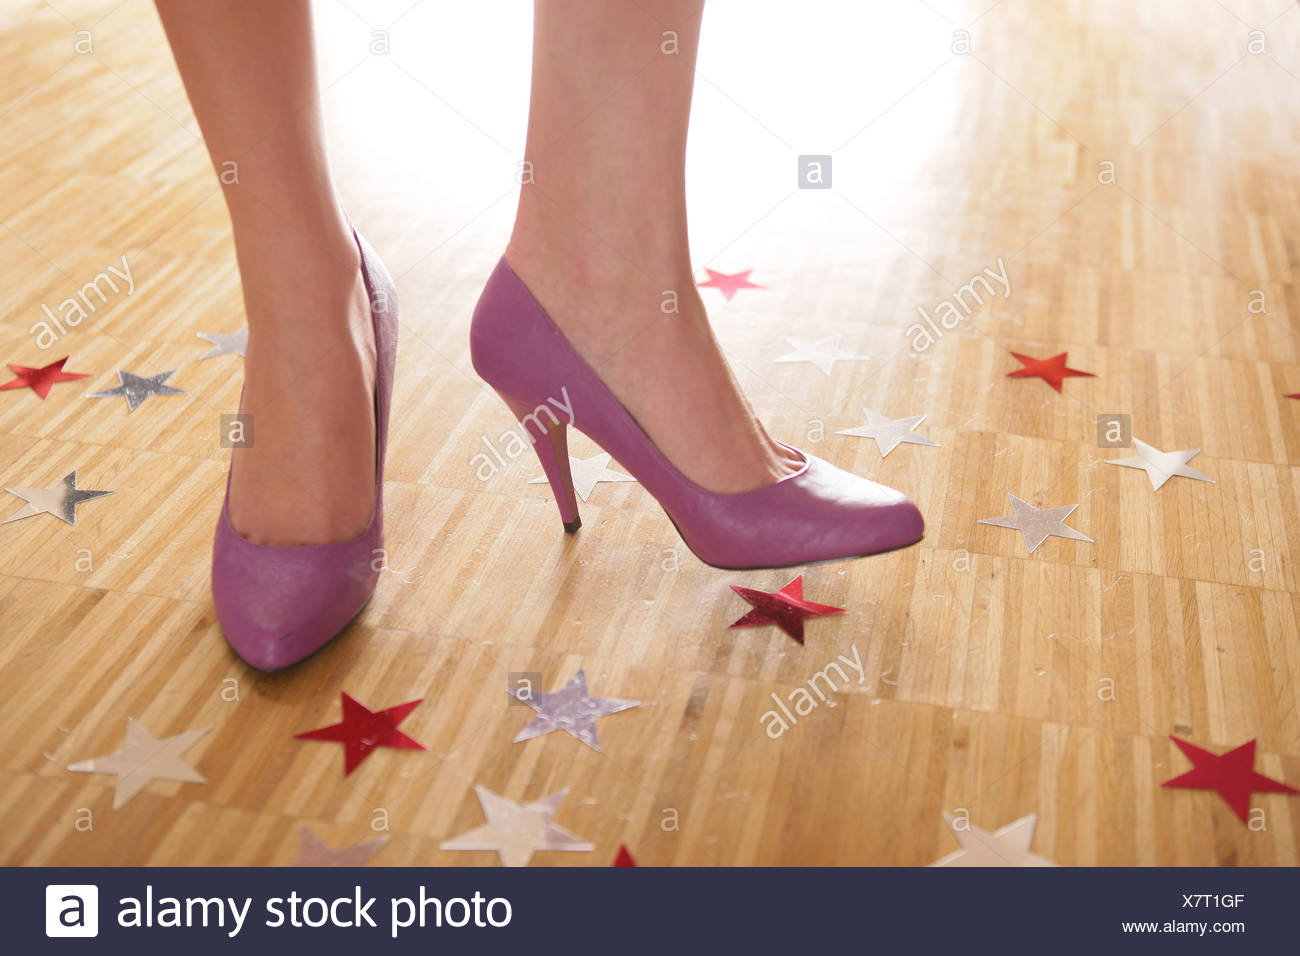 Feet and shoes of a female dancer on a wooden floor Stock Photo